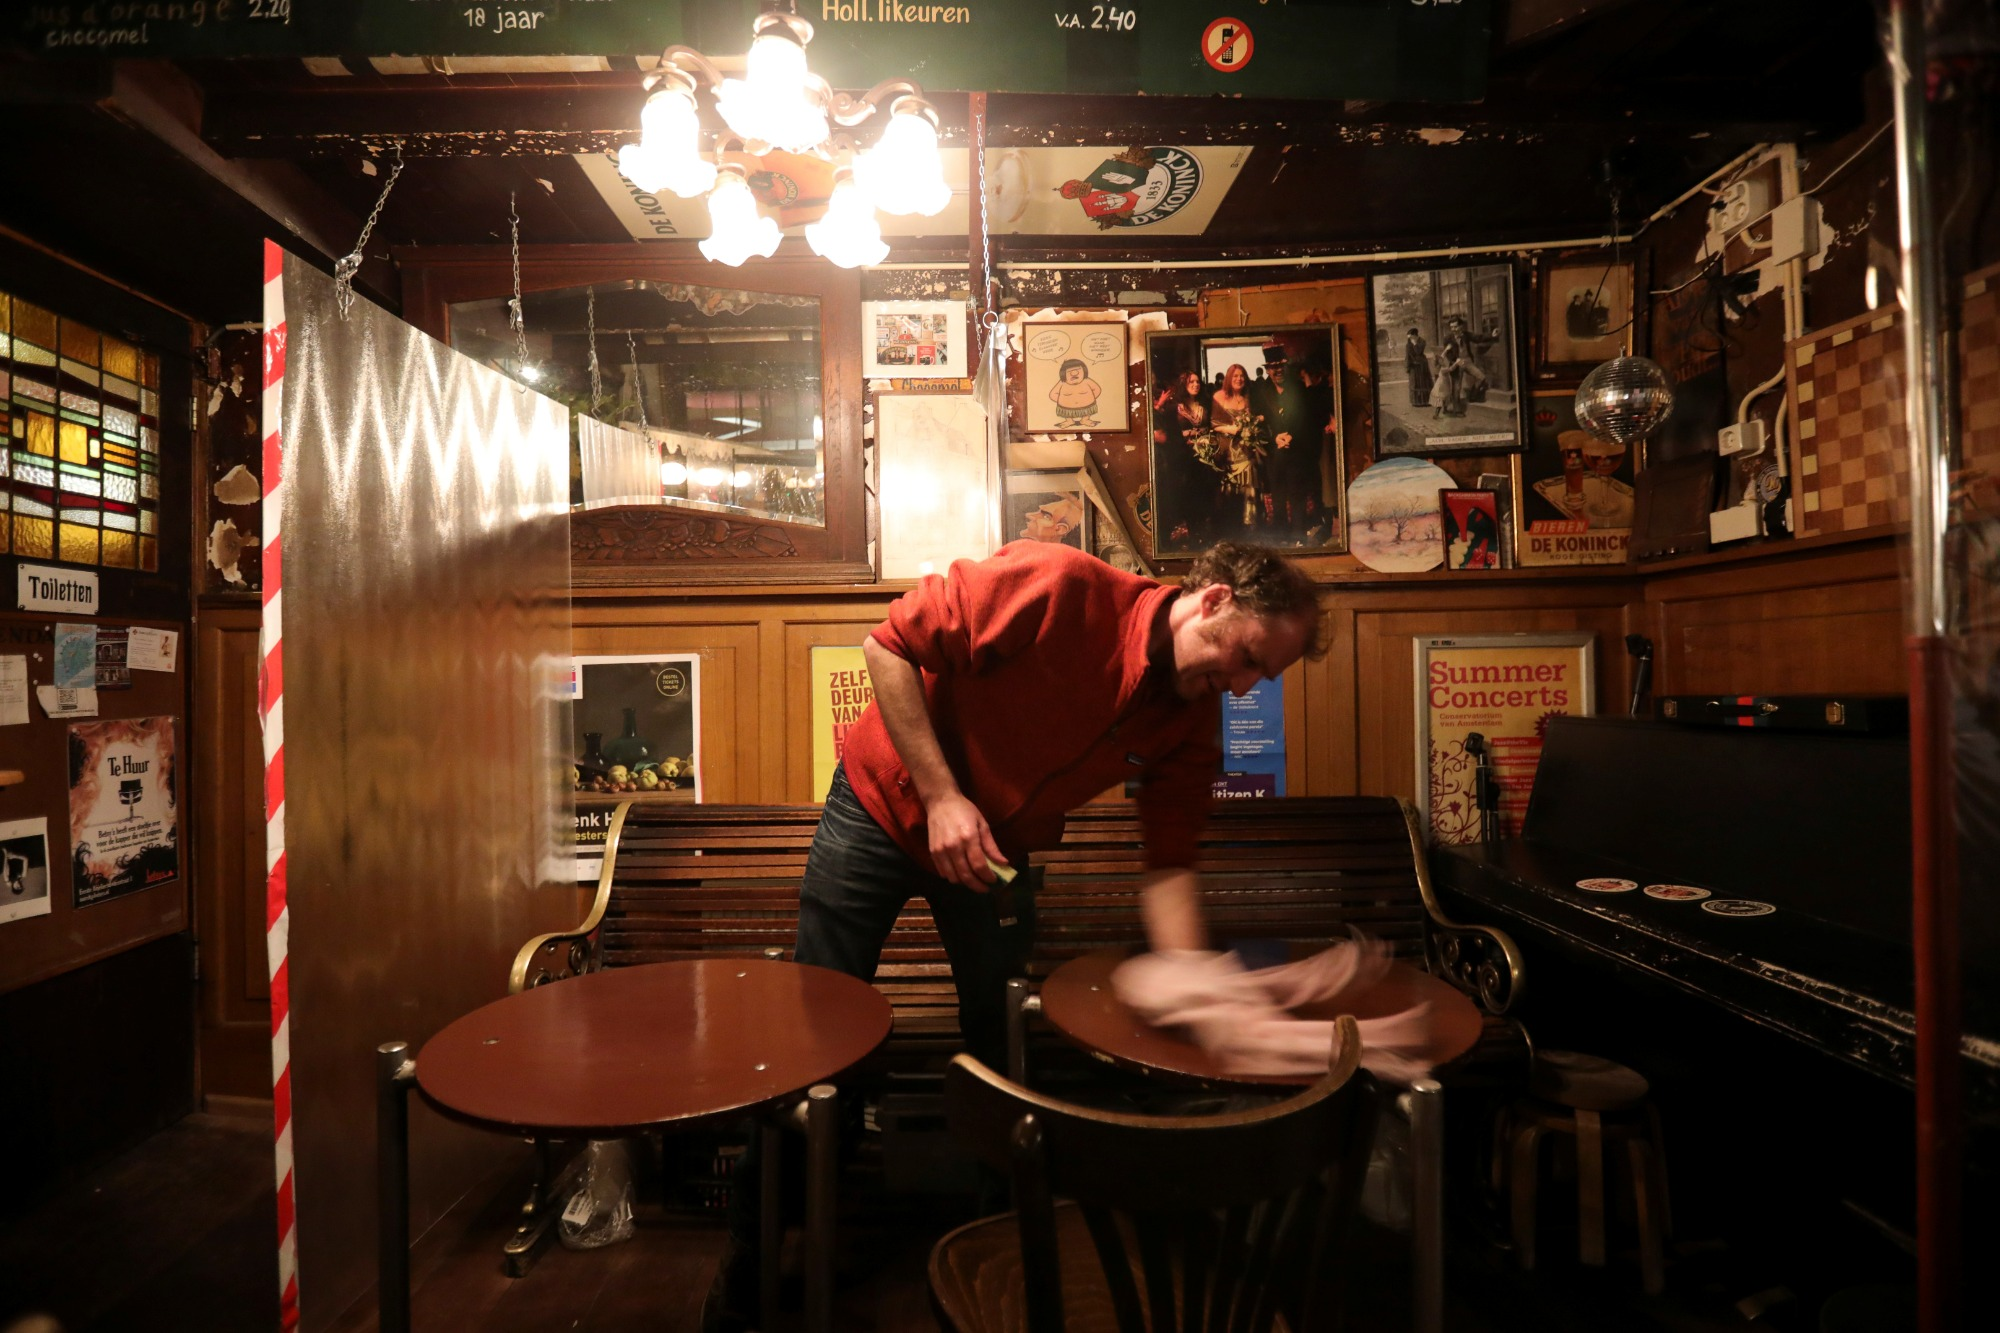 A man cleans a bar after it closed following the new restrictions announced by the Dutch government, as the Netherlands battle to control the spread of the coronavirus disease (COVID-19), in Amsterdam, Netherlands October 14, 2020. REUTERS/Eva Plevier